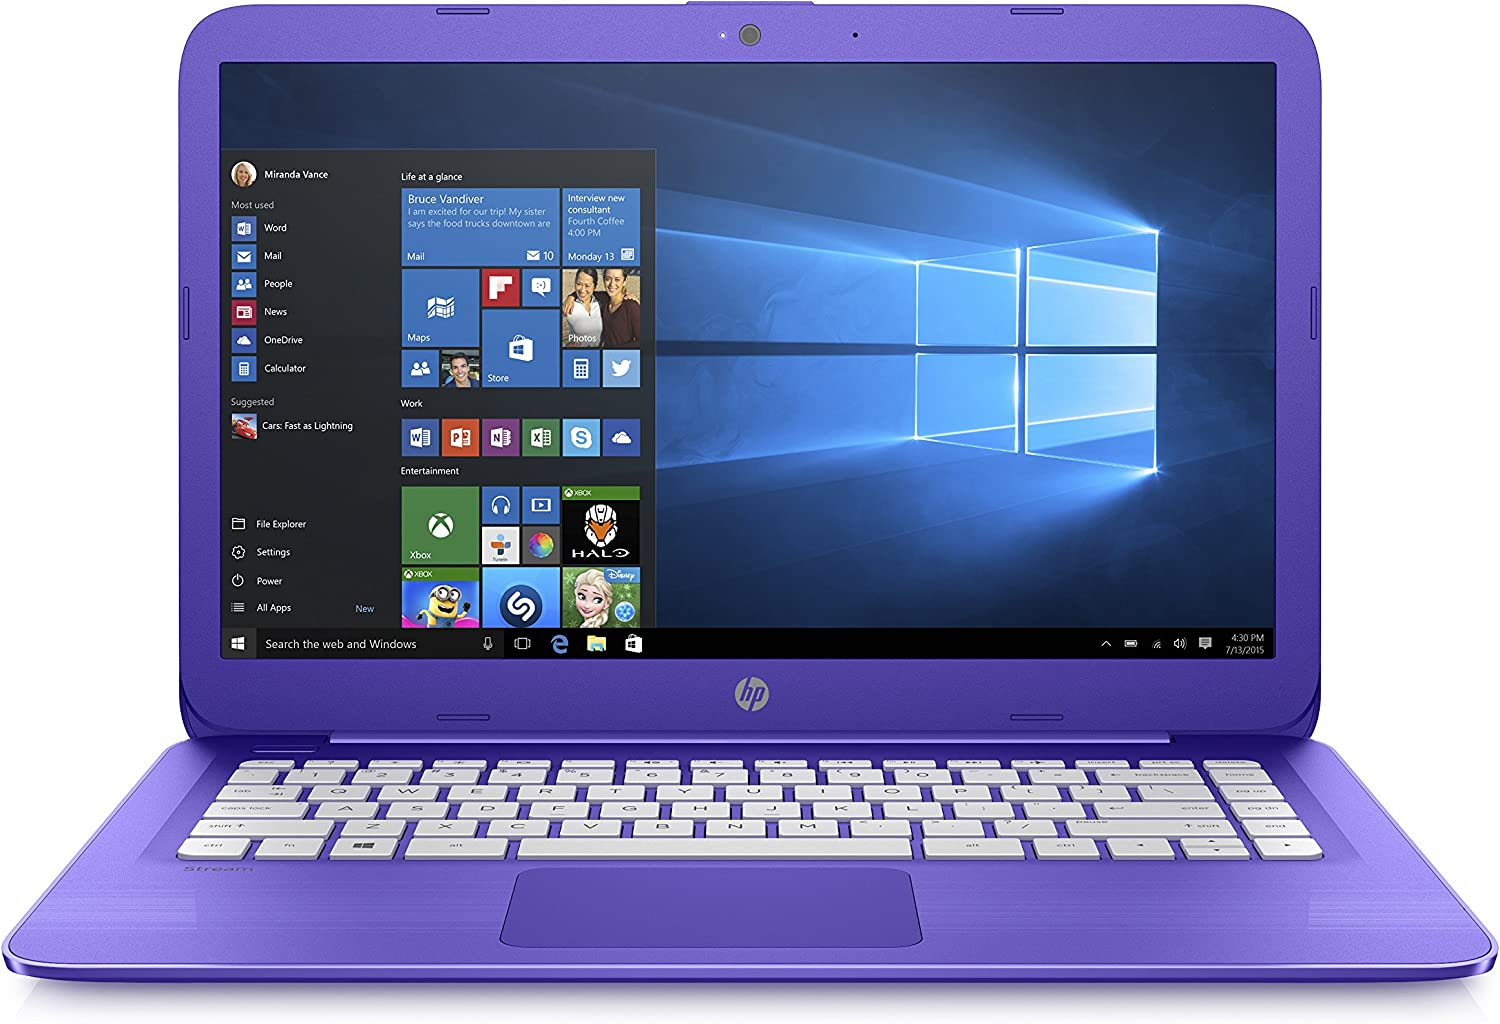 HP Stream 14-inch Laptop, Intel Celeron N4000 Processor, 4 GB RAM, 64 GB eMMC, Windows 10 S with Office 365 Personal for One Year (14-cb180nr, Purple)